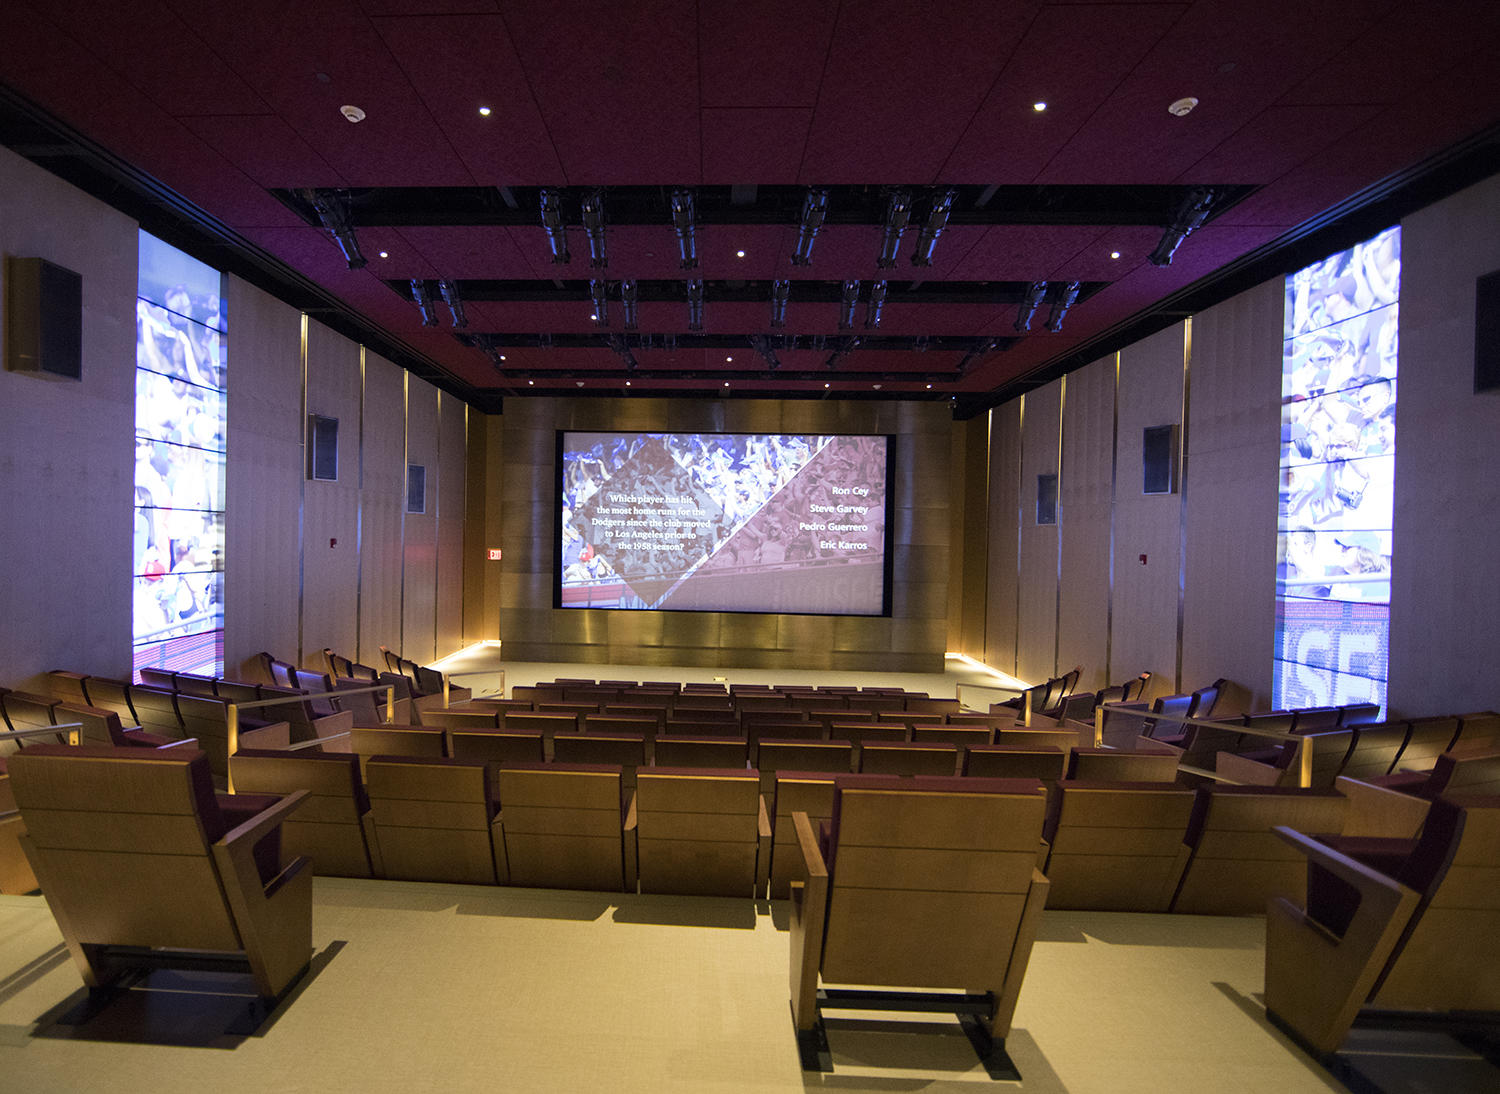 After a complete renovation, the 189-seat Grandstand Theater will reopen May 25 as the start to Hall of Fame Classic Weekend. (Milo Stewart Jr./National Baseball Hall of Fame and Museum)